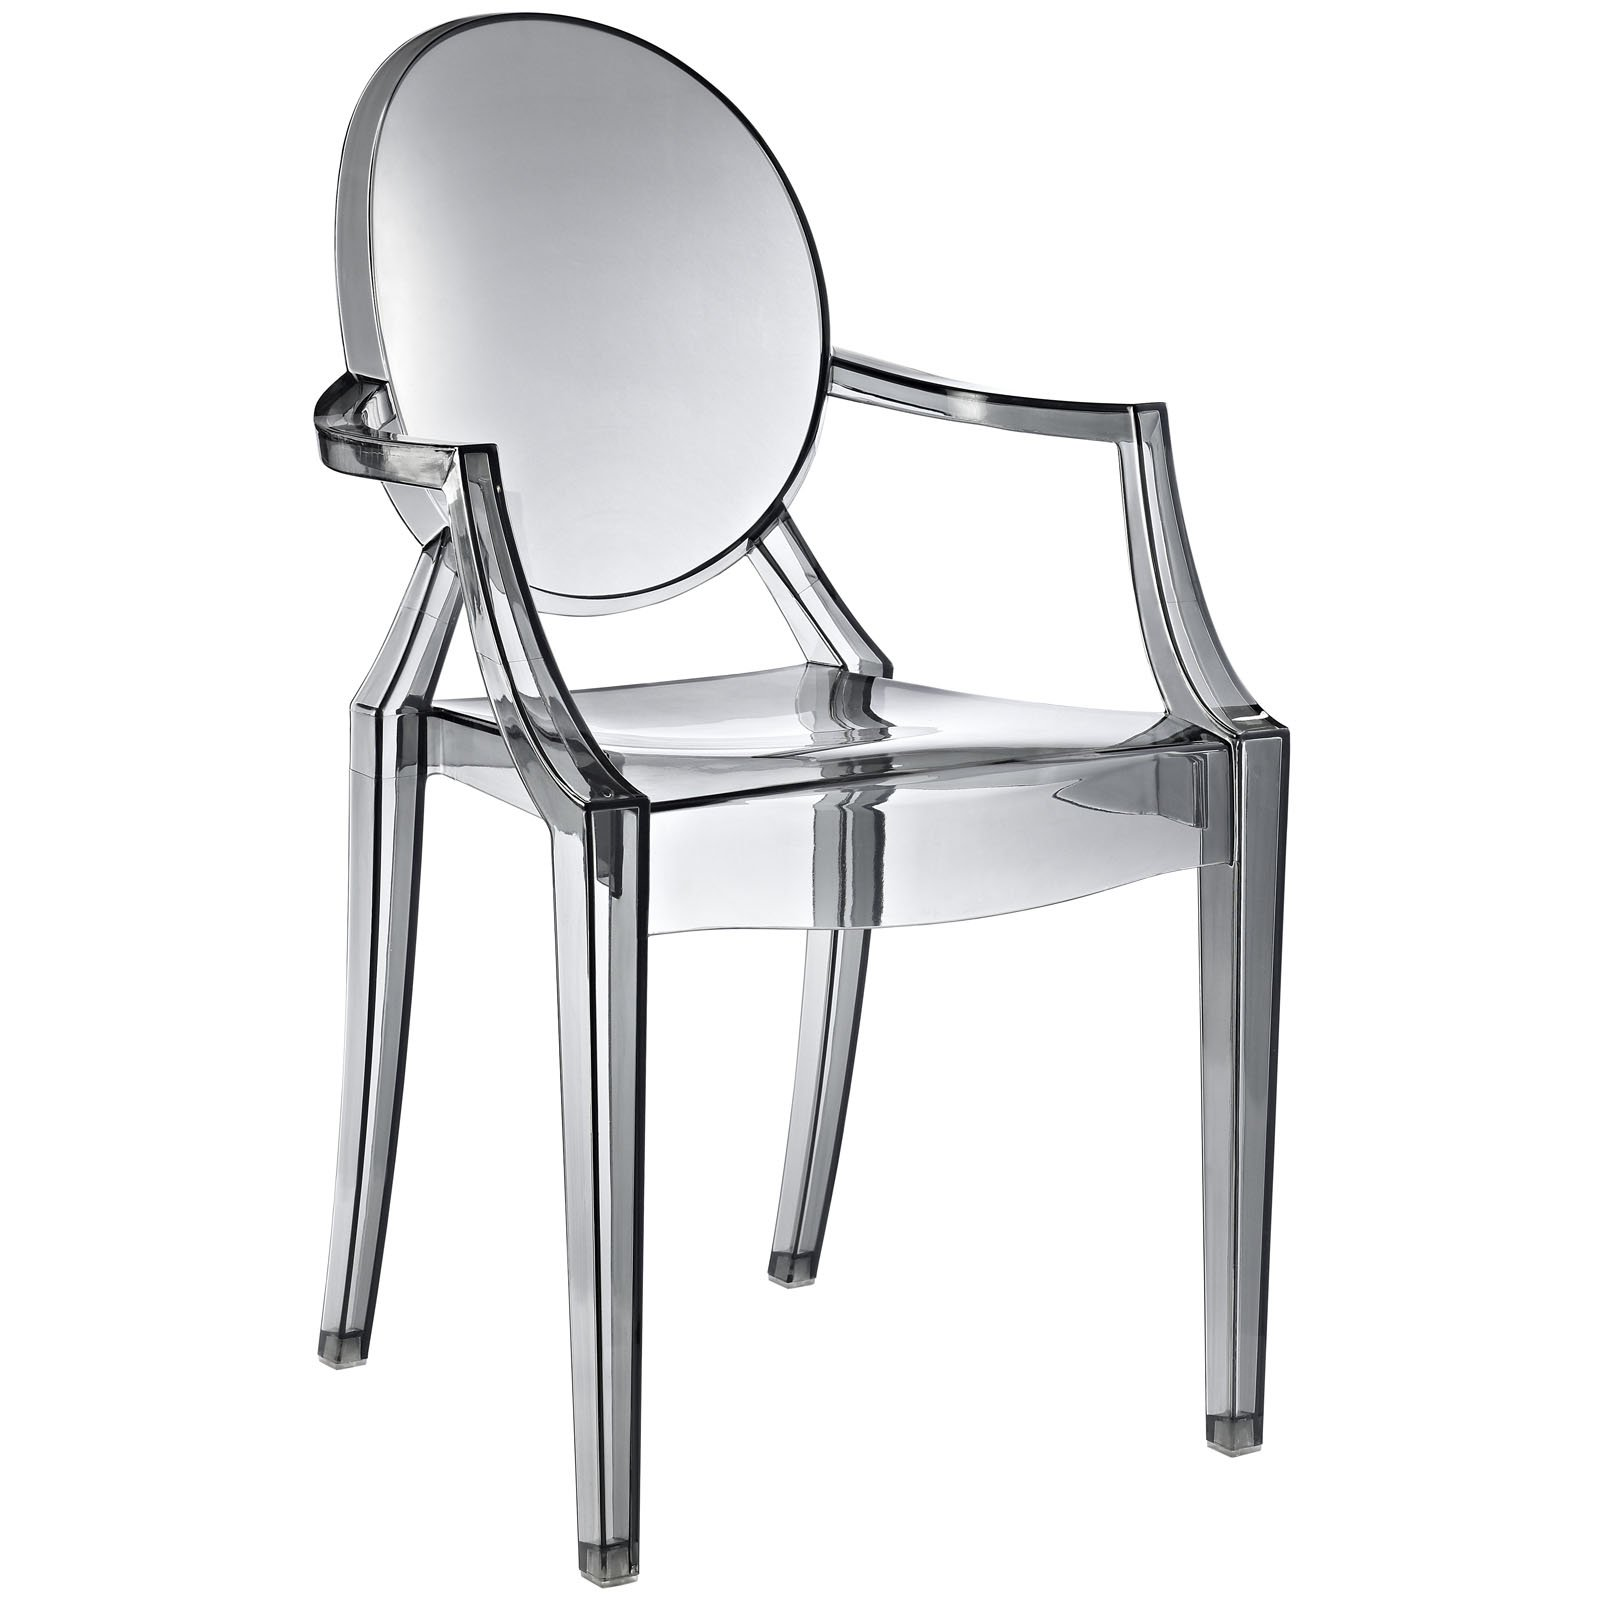 Modway Casper Modern Acrylic Stacking Kitchen and Dining Room Arm Chair in Smoke - Fully Assembled